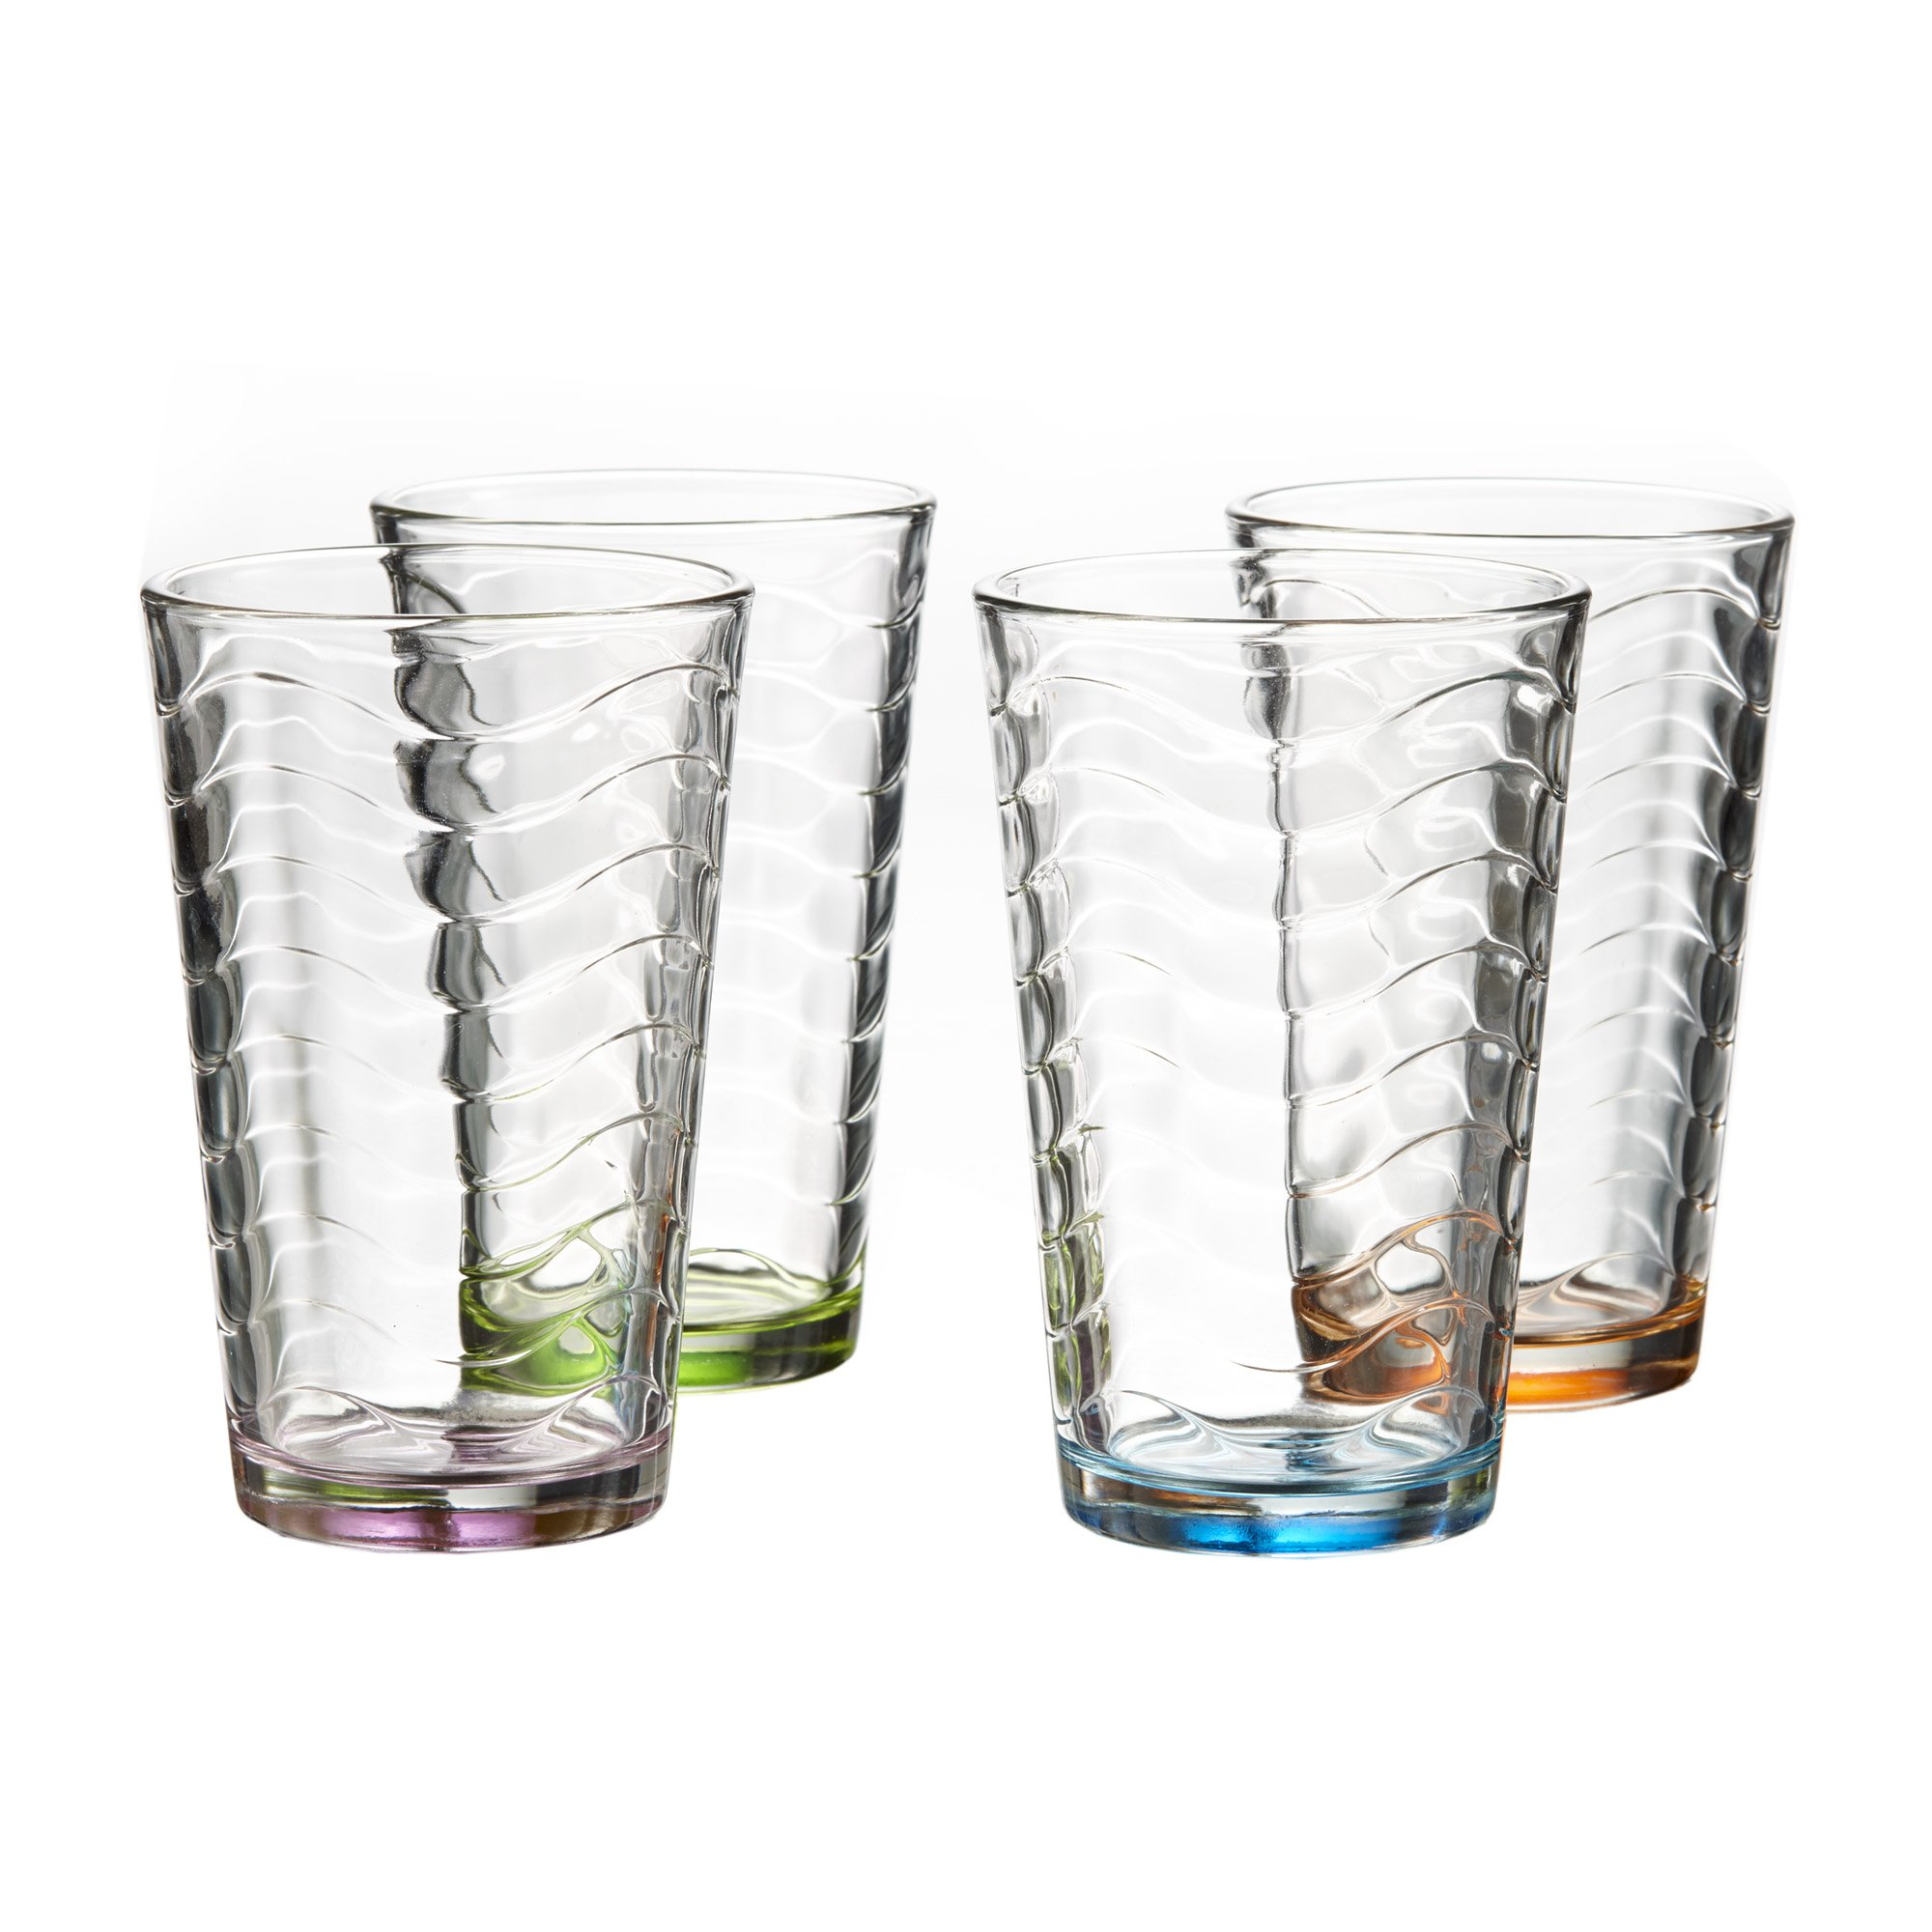 Style Setter 229224-HB-4C Allure Colored Highball Glasses (Set of 4), Multicolor